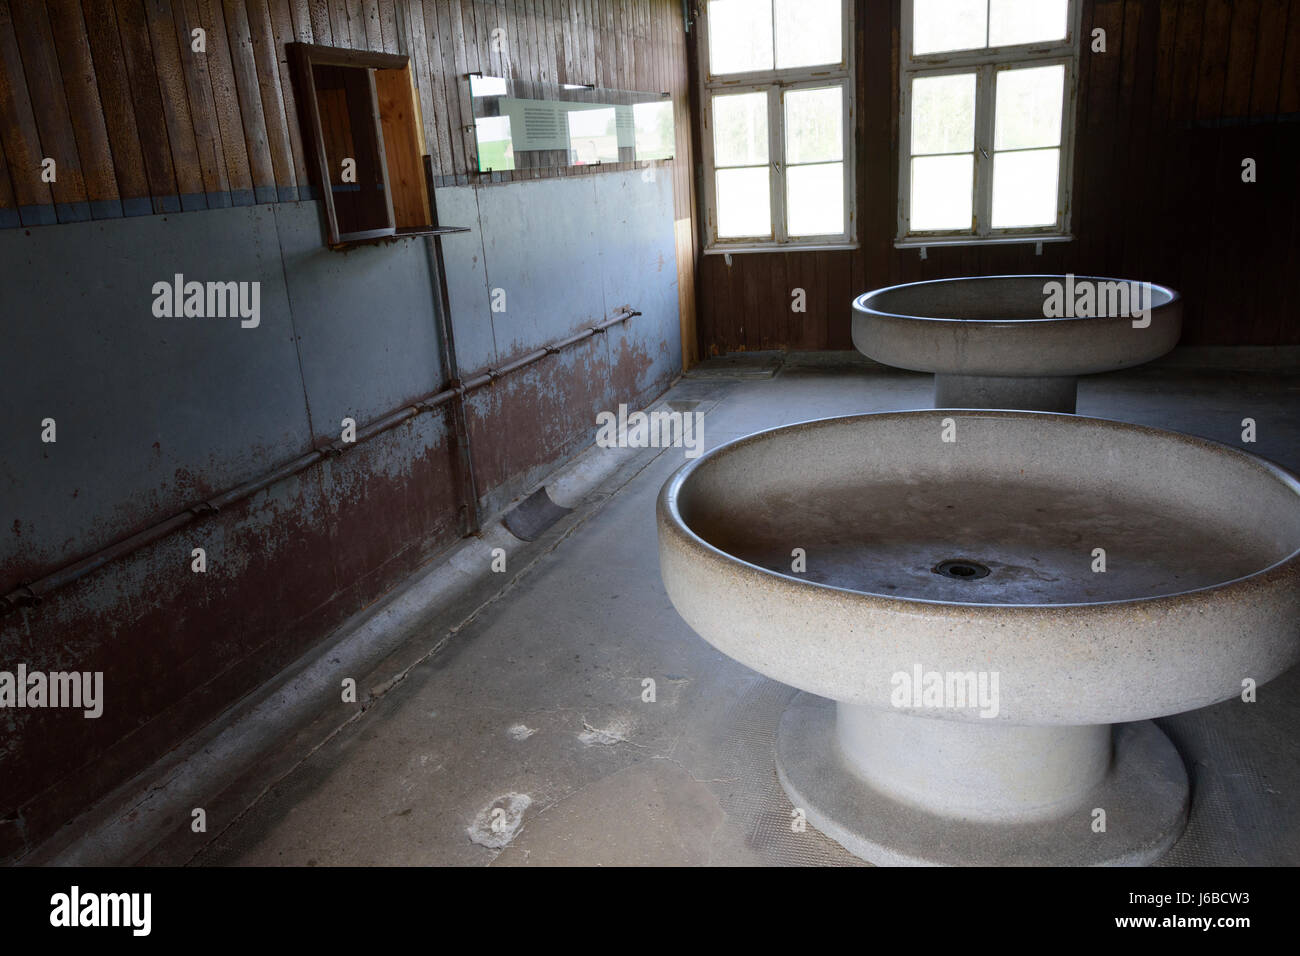 Mauthausen - Gusen concentration camp. Austria, washing room in one of the barracks - Stock Image